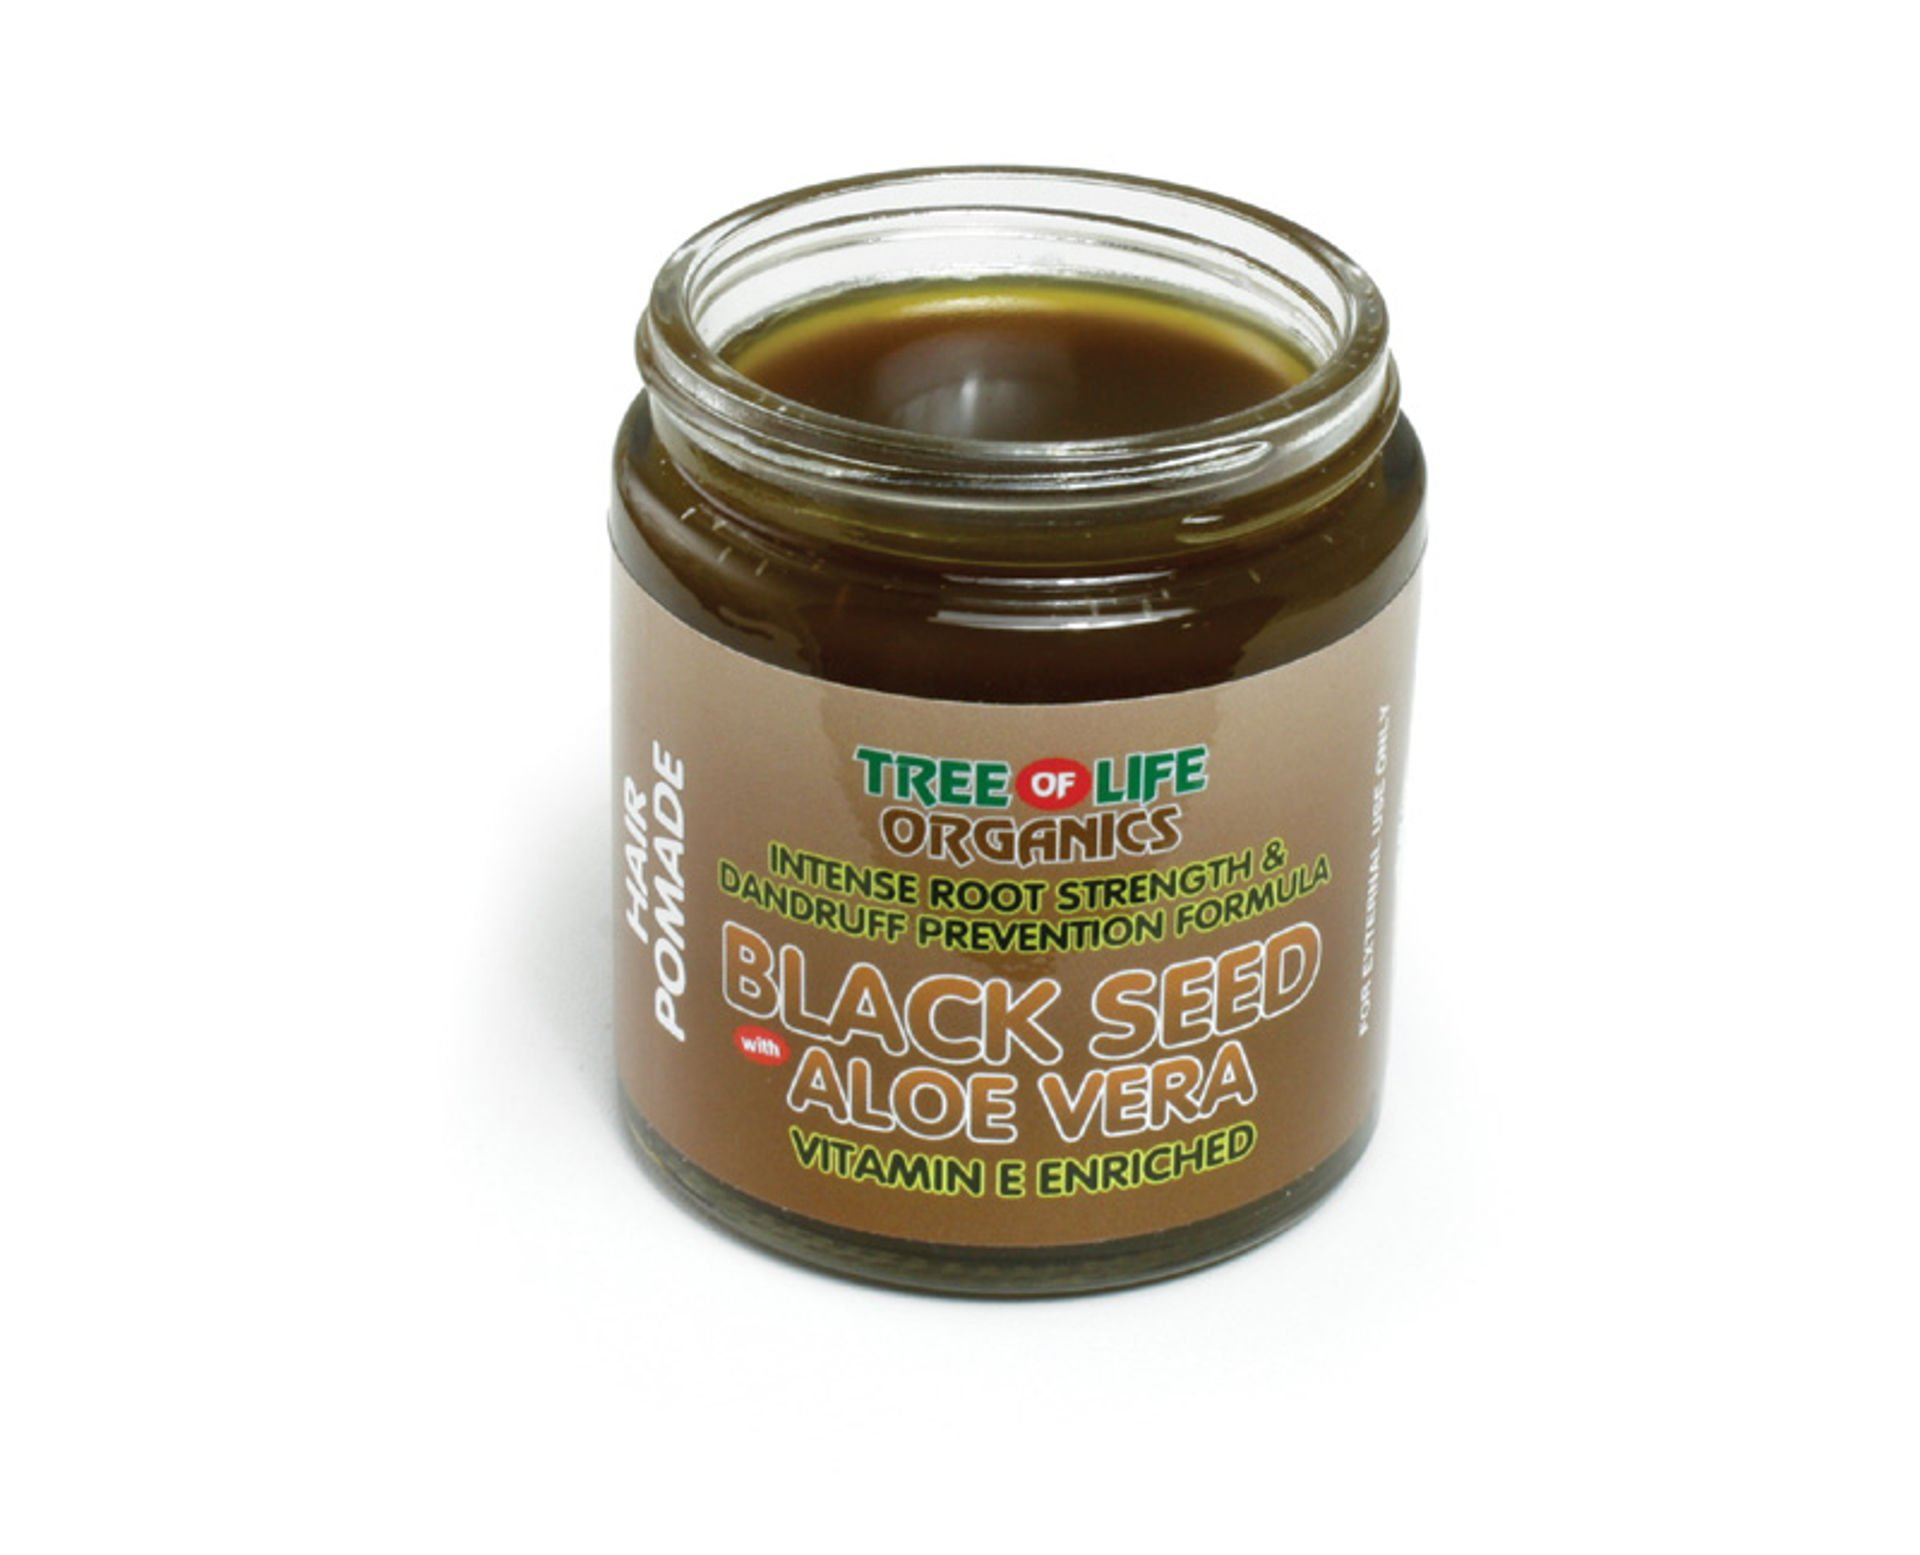 Picture of Black Seed & Aloe Vera Hair Pomade